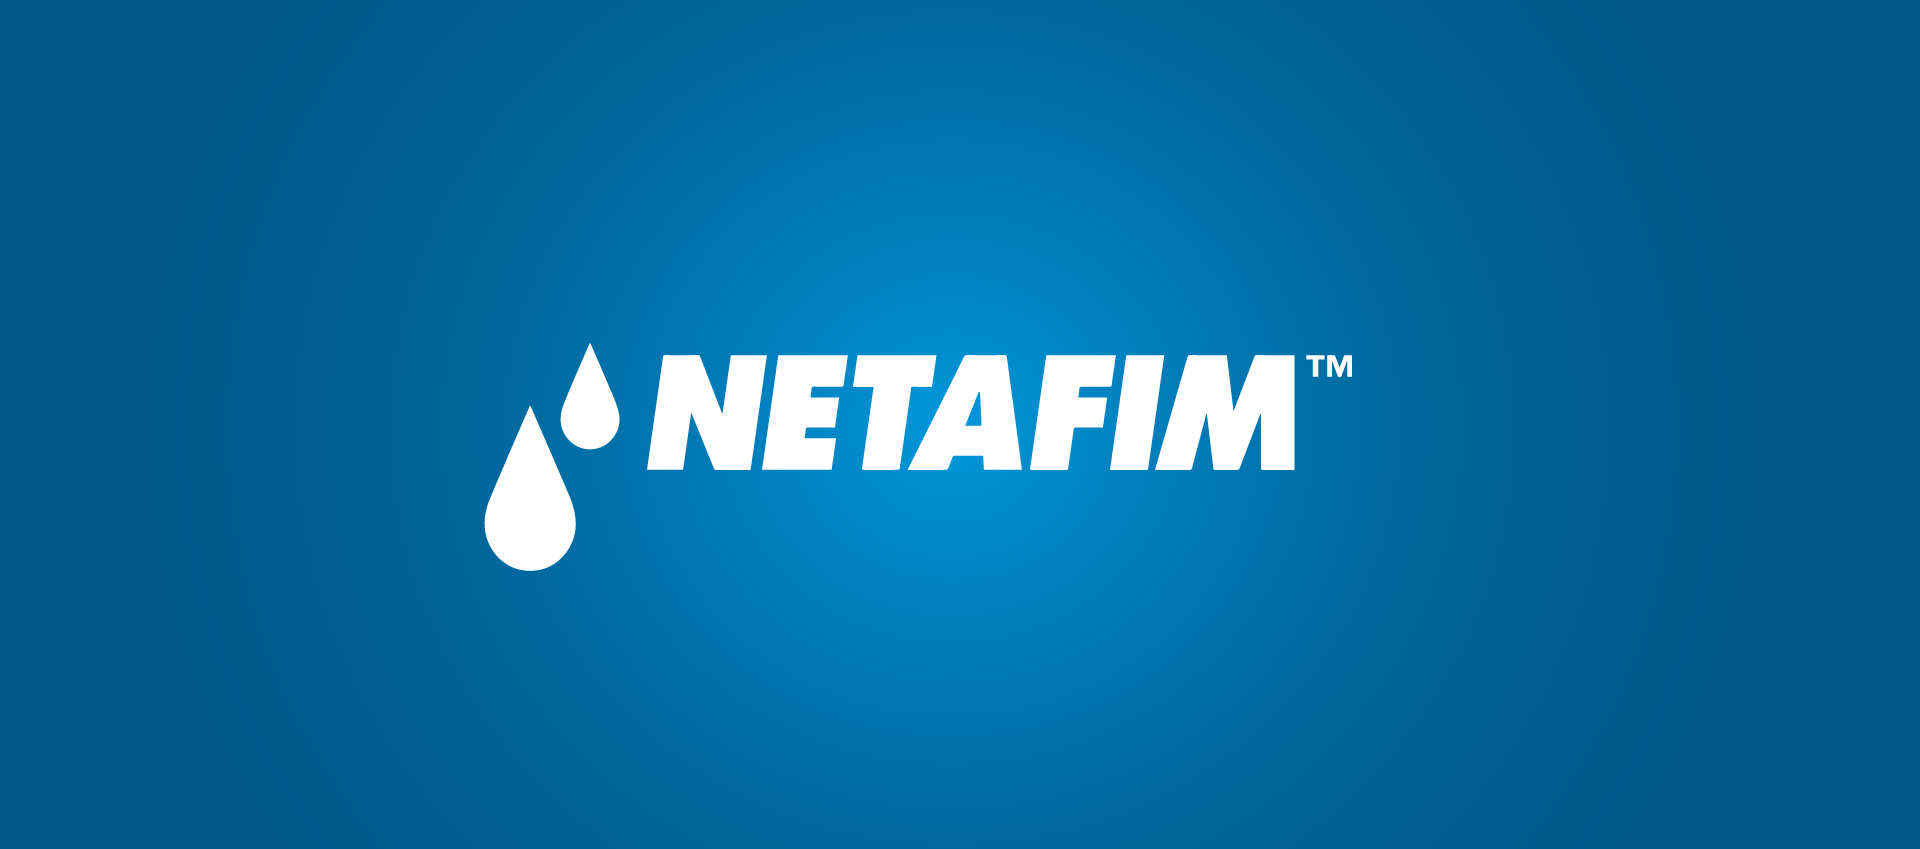 Netafim-Movie-Slider-02-Graphic-Design-Nadav-Mizrahi-Nadmiz